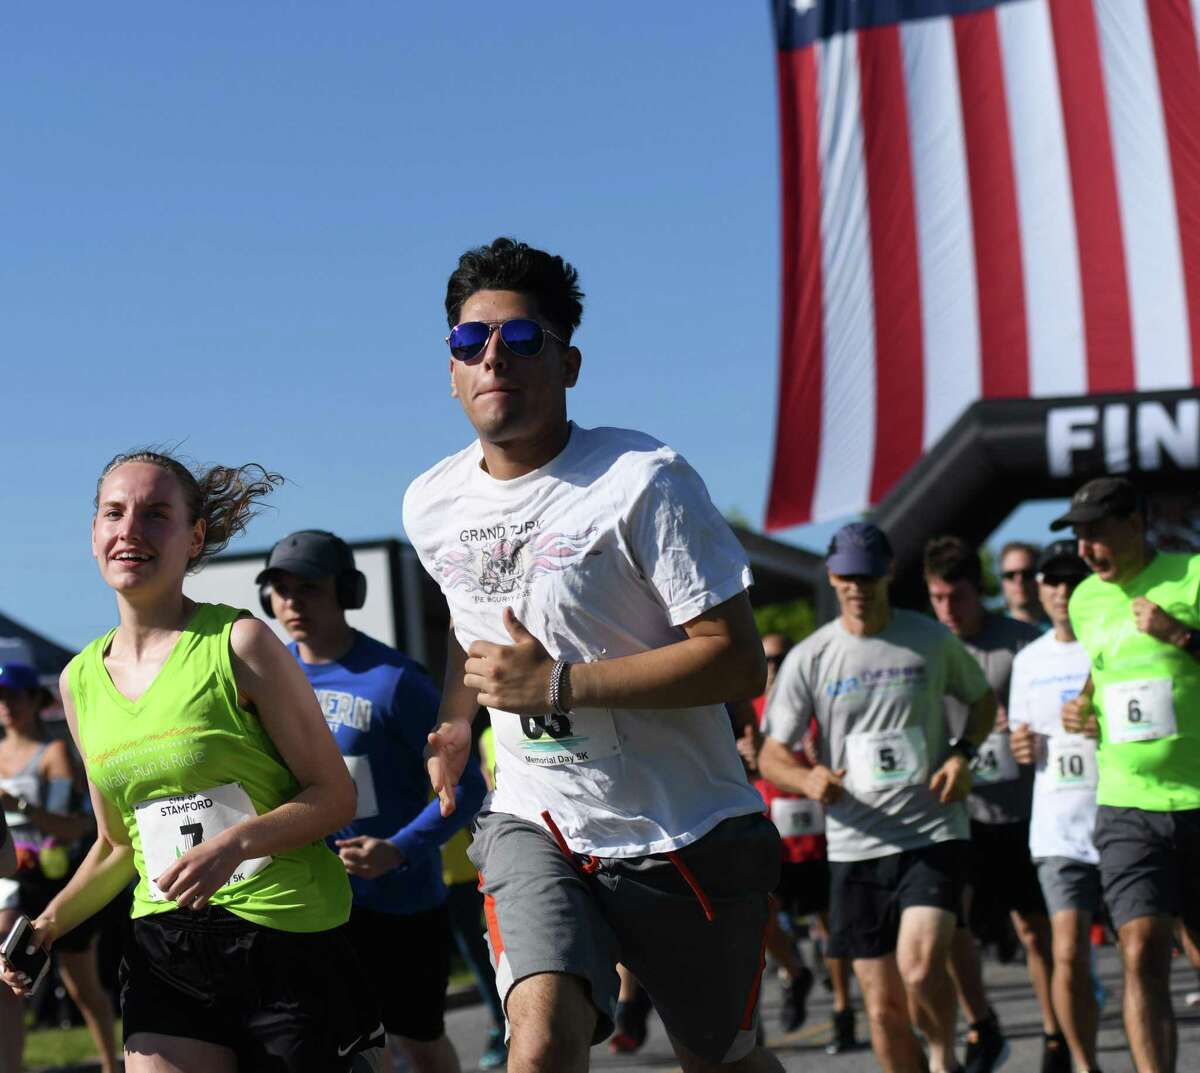 Photos from the first Memorial Day 5K run at Cummings Point Park in Stamford, Conn. Monday, May 27, 2019. Due to diminishing crowds and ongoing renovation of Veterans Memorial Park, Stamford held a 5K run and Memorial Day ceremony instead of the usual parade through downtown. About 300 runners participated in the 5K, which preceeded a service on the beach in honor of the fallen veterans.